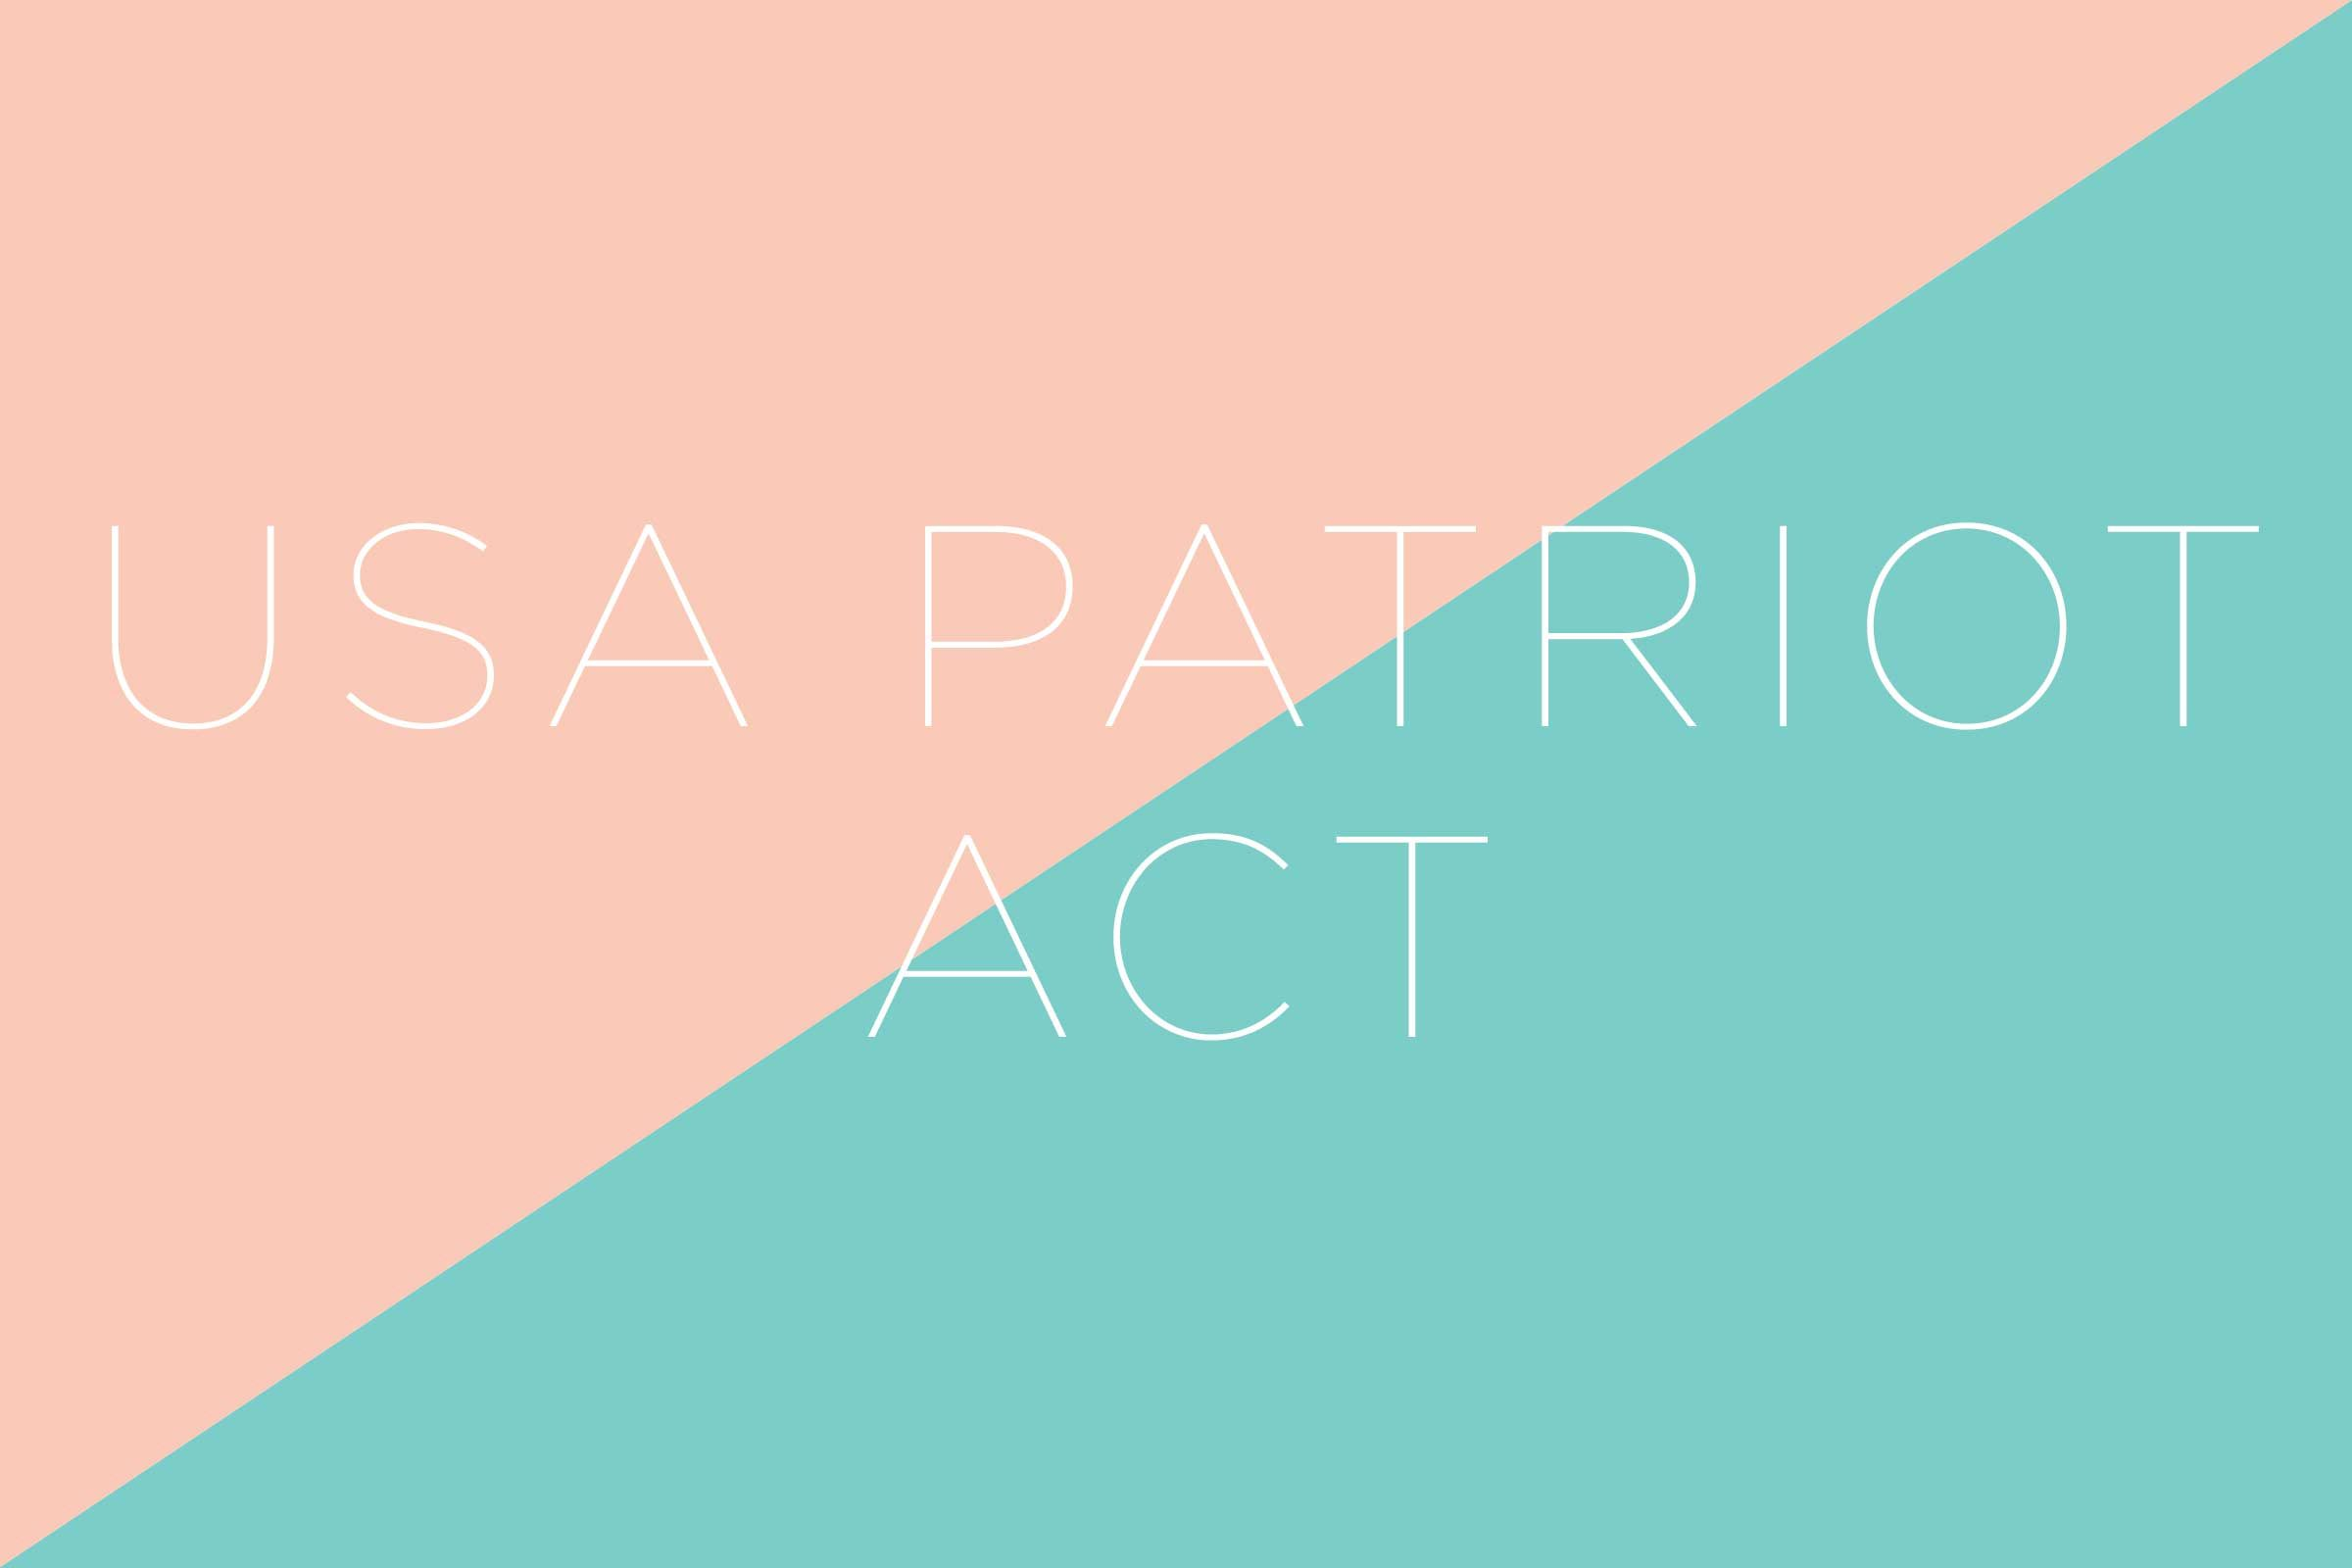 What does the USA PATRIOT Act stand for?